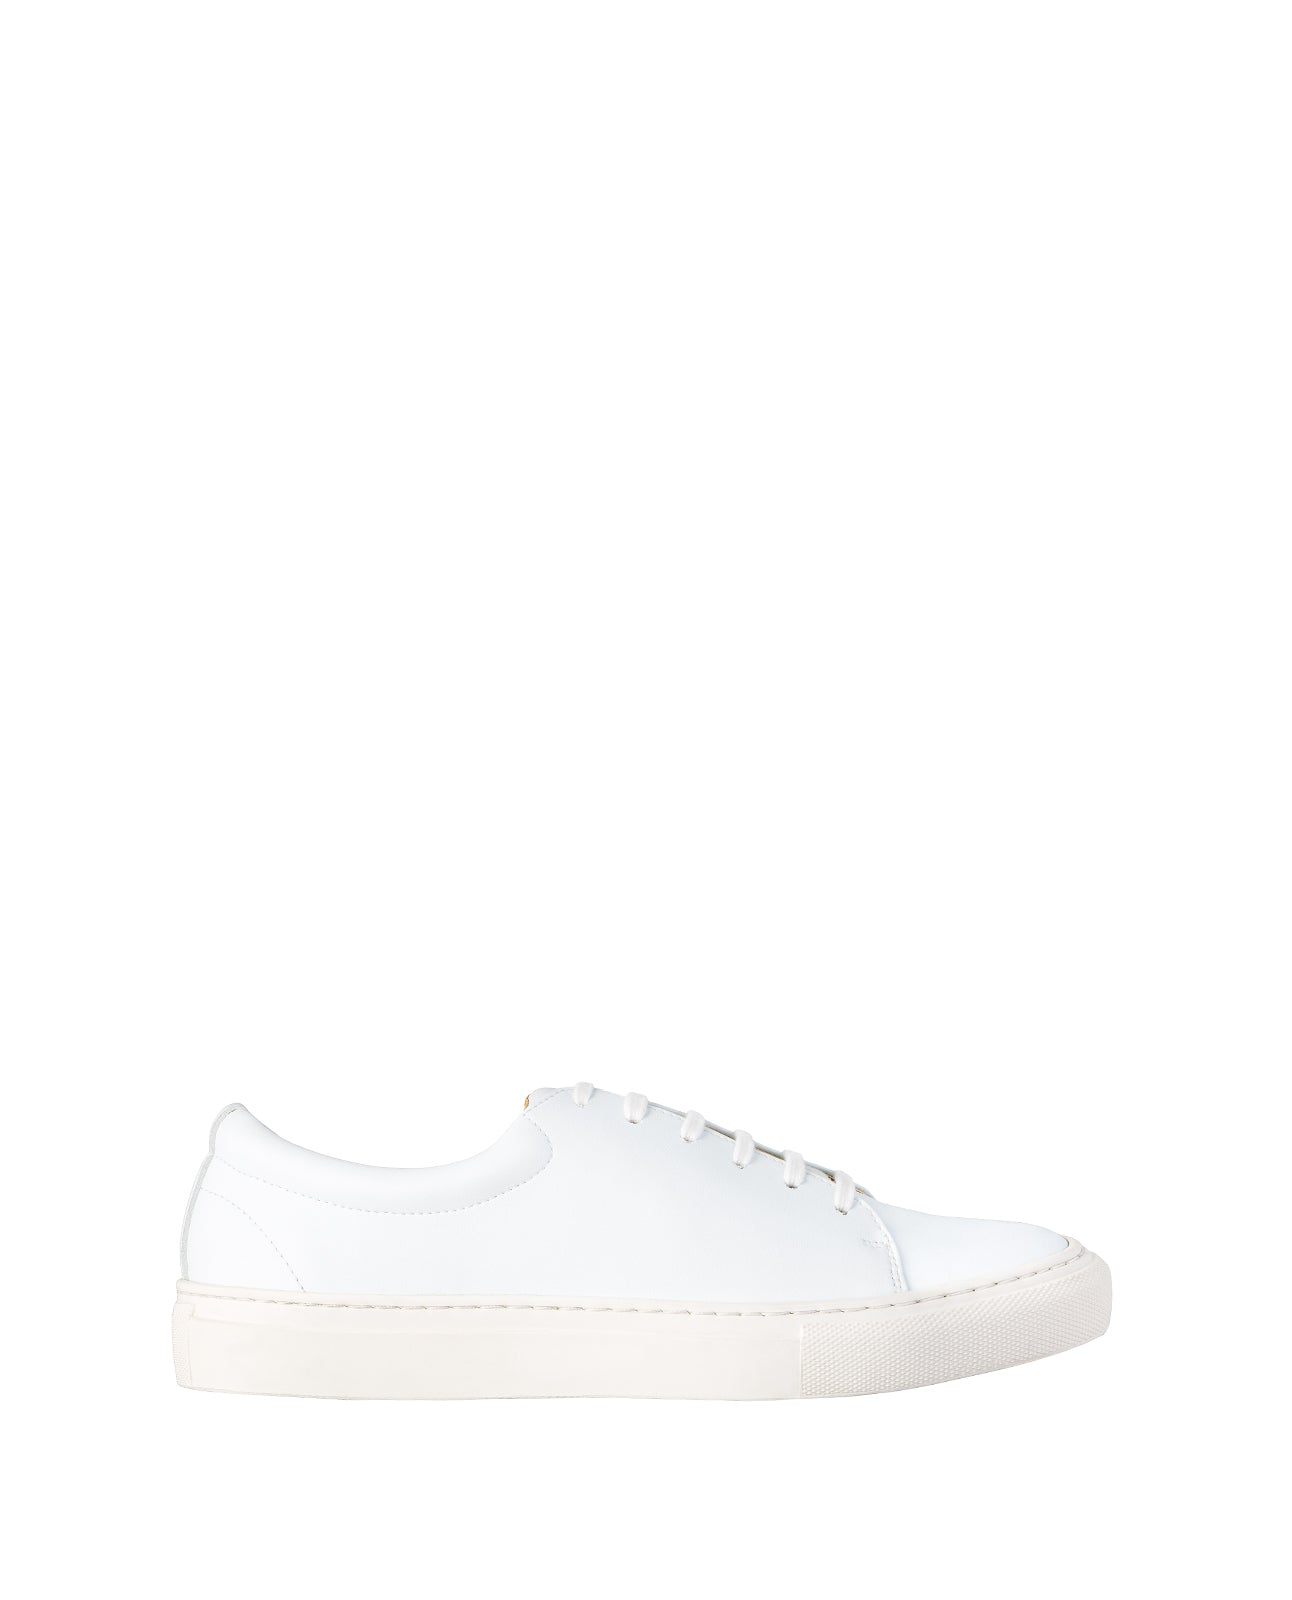 Sydney Brown Vegan, Animal-Free, Non-Leather, Ethical Classic Low Top Sneakers in White Faux-Nappa, Eco-Friendly, Unisex Style